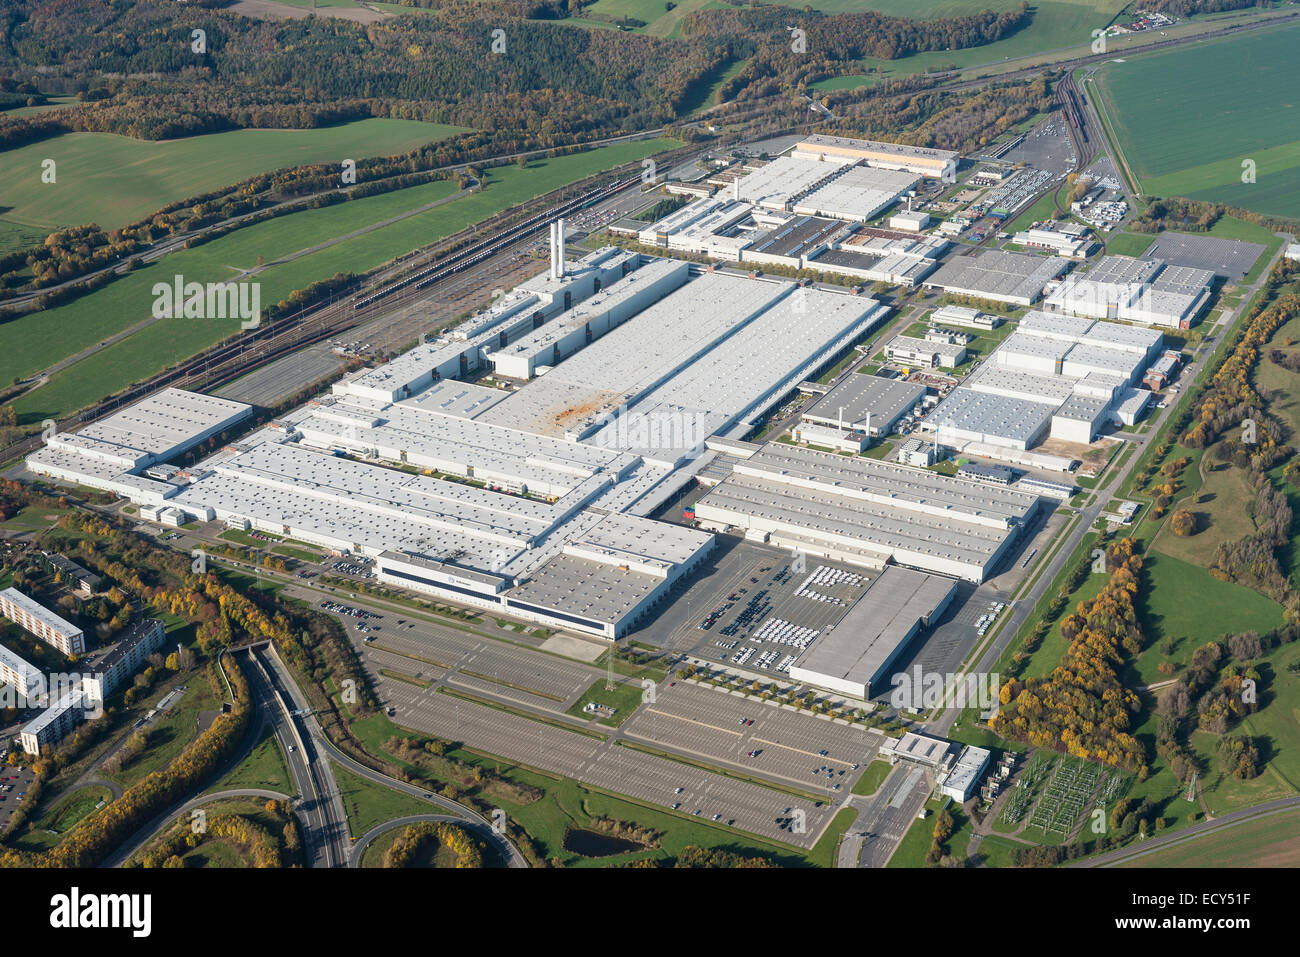 Aerial view, Volkswagen Mosel-Zwickau factory, founded in 1990, Zwickau, Saxony, Germany - Stock Image